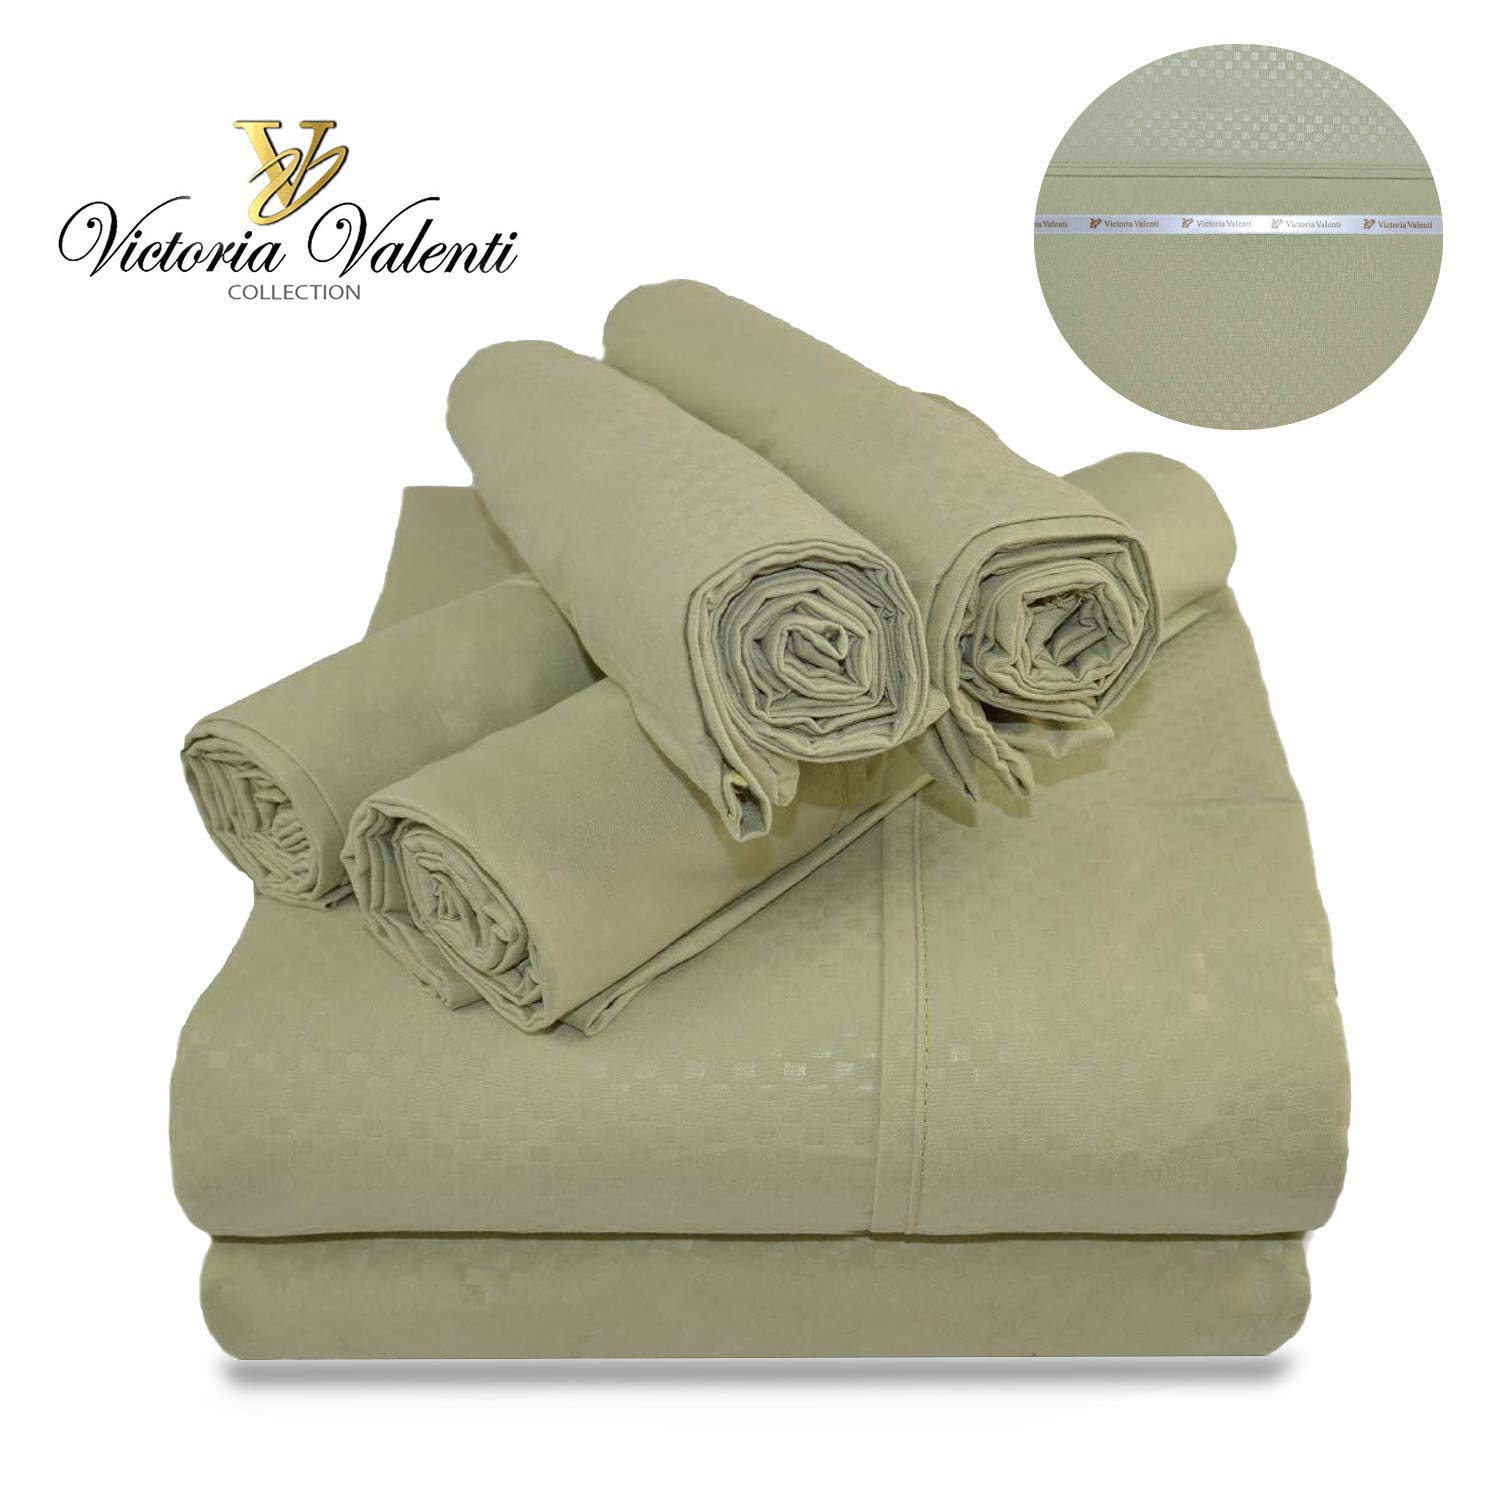 Victoria Valenti Embossed Sheet Set with 2 Pillow Cases, Double Brushed and Ultra Soft with Deep Pockets for Extra Deep Mattress, Microfiber, Hypoallergenic TW SAGE